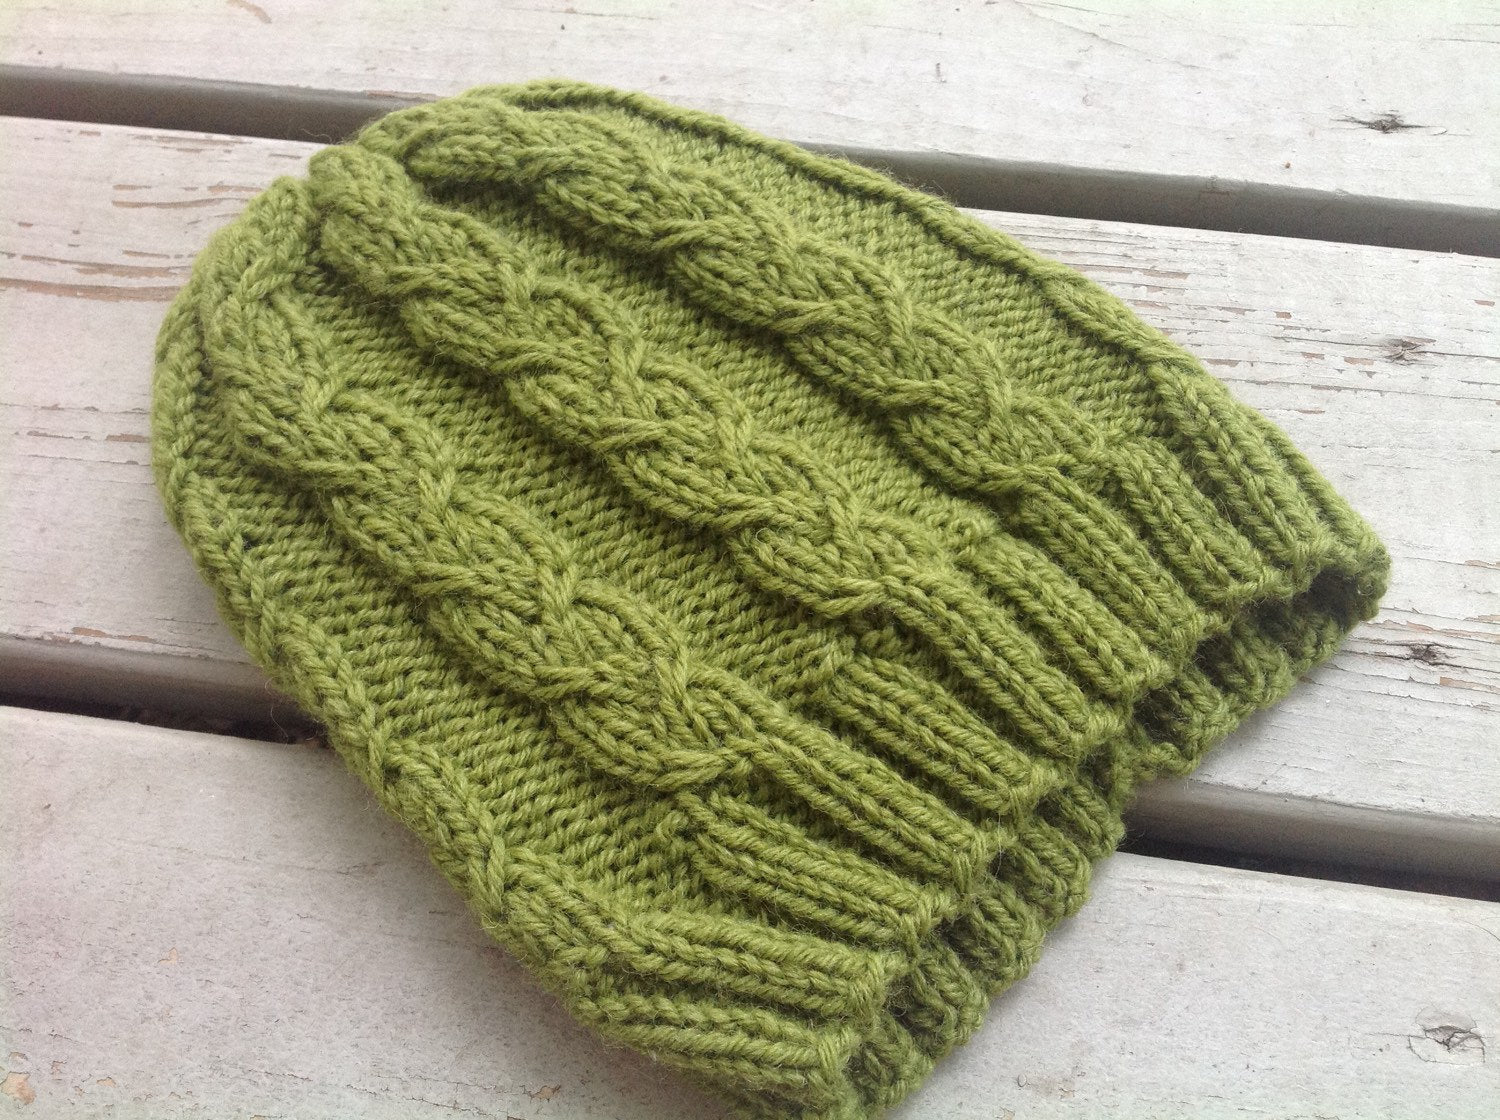 unisex green cable knit hat knitting pattern ... 5afa76d8c31